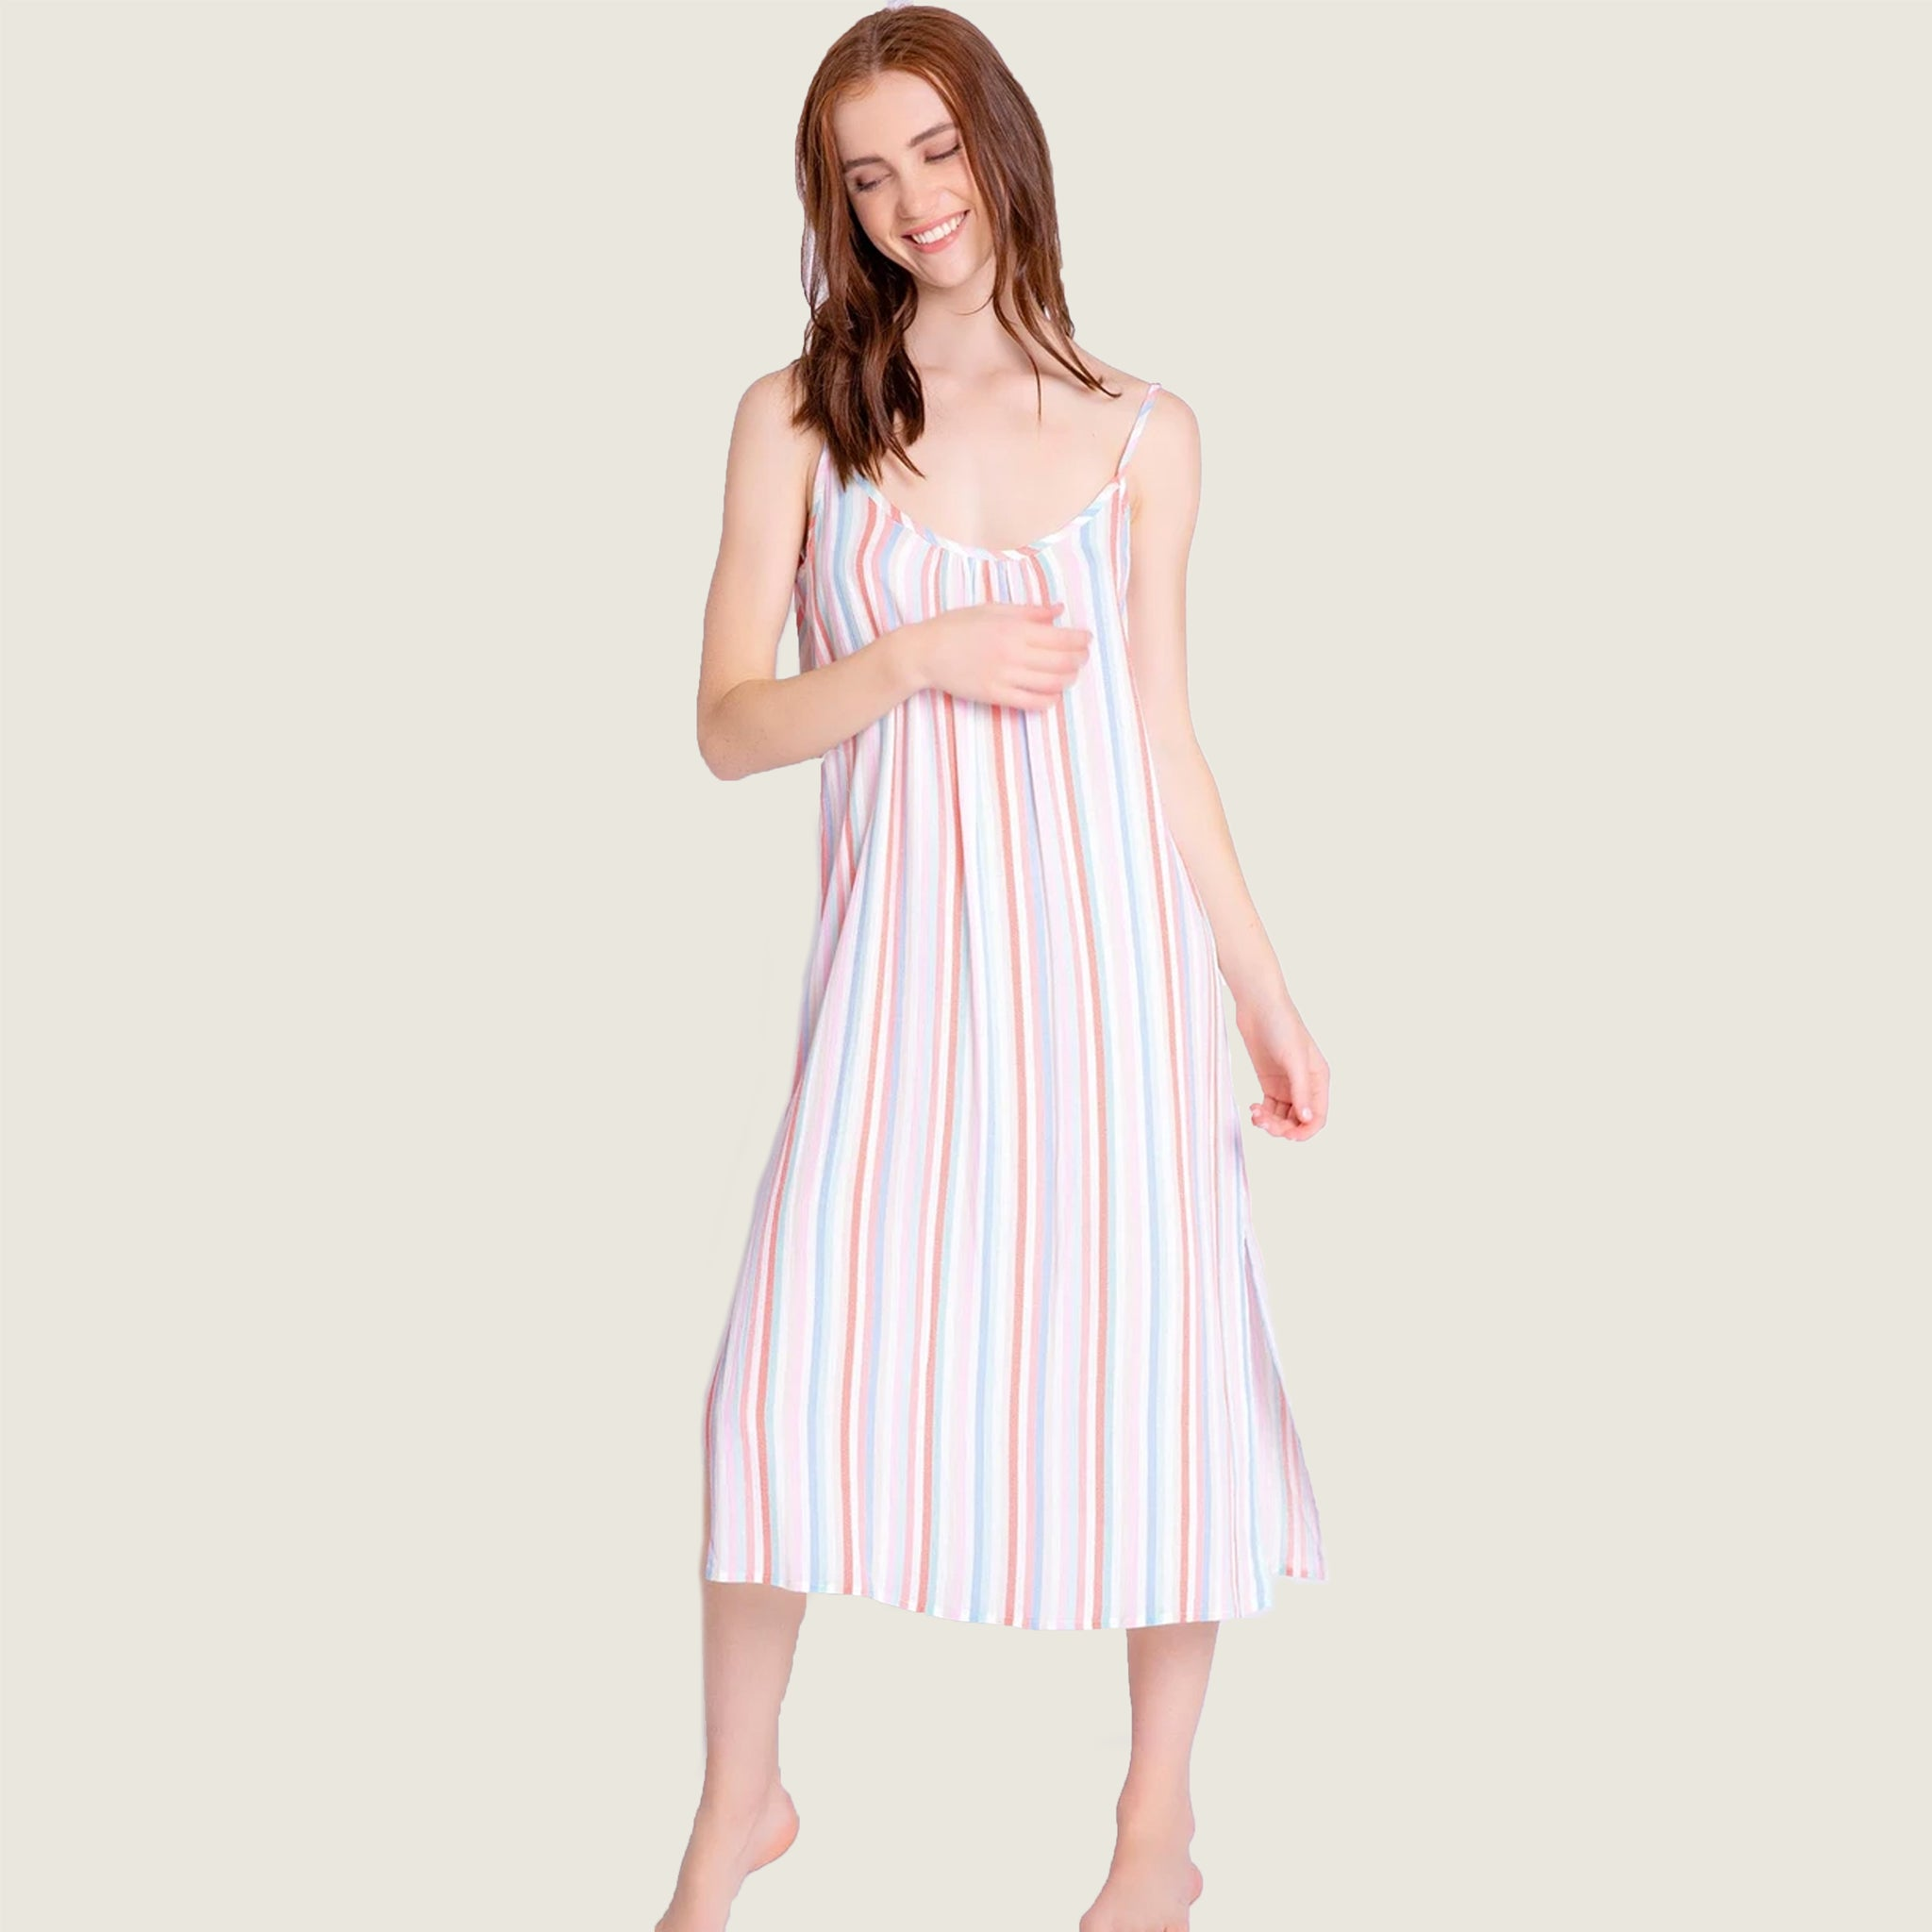 Bright Morning Dress - Blackbird General Store